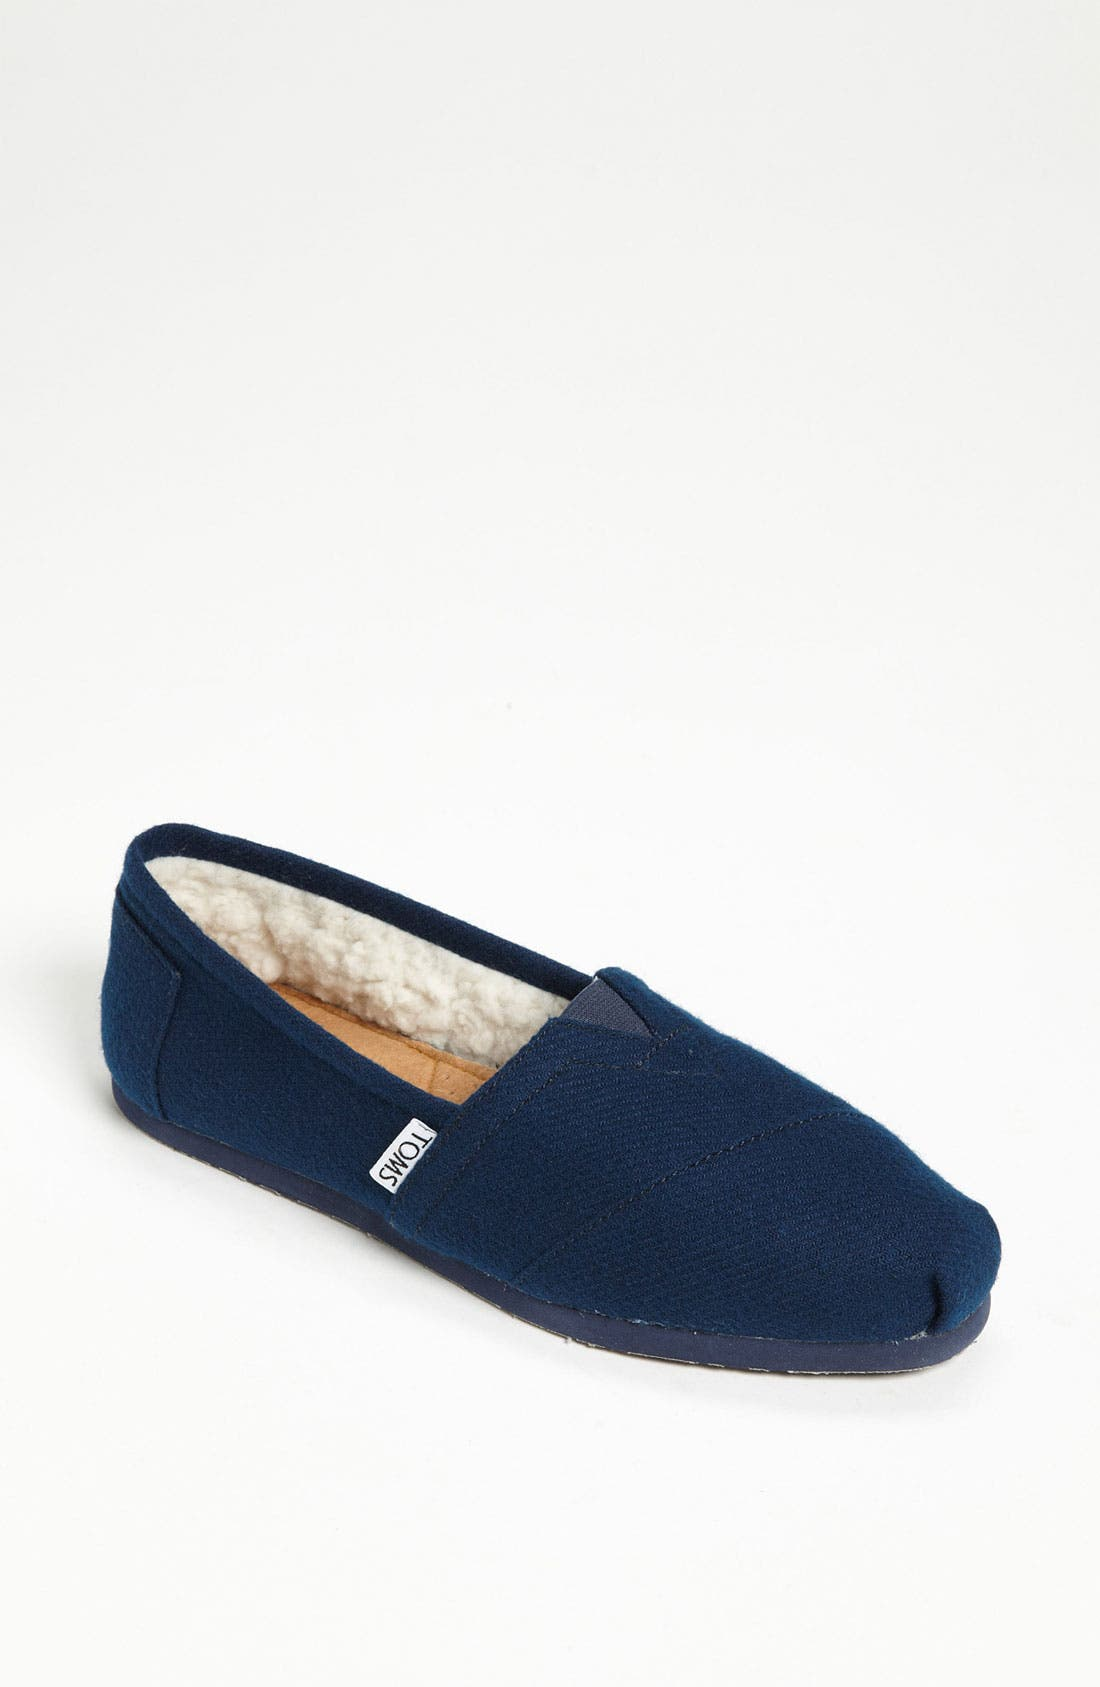 Main Image - TOMS 'Classic' Woolen Slip-On (Women) (Nordstrom Exclusive)